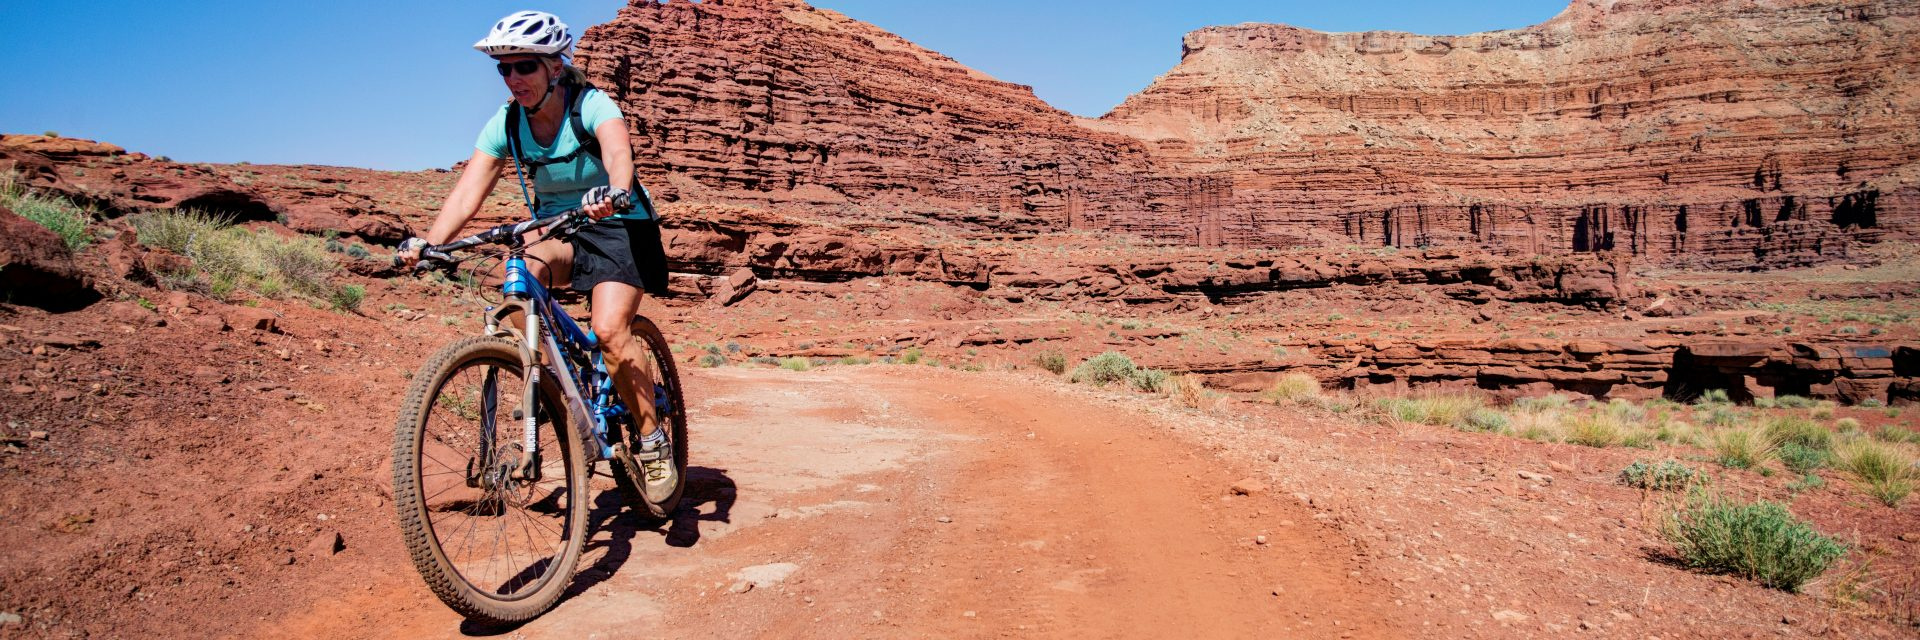 Passing out of Lockhart Basin, Needles to Moab mountain bike tour